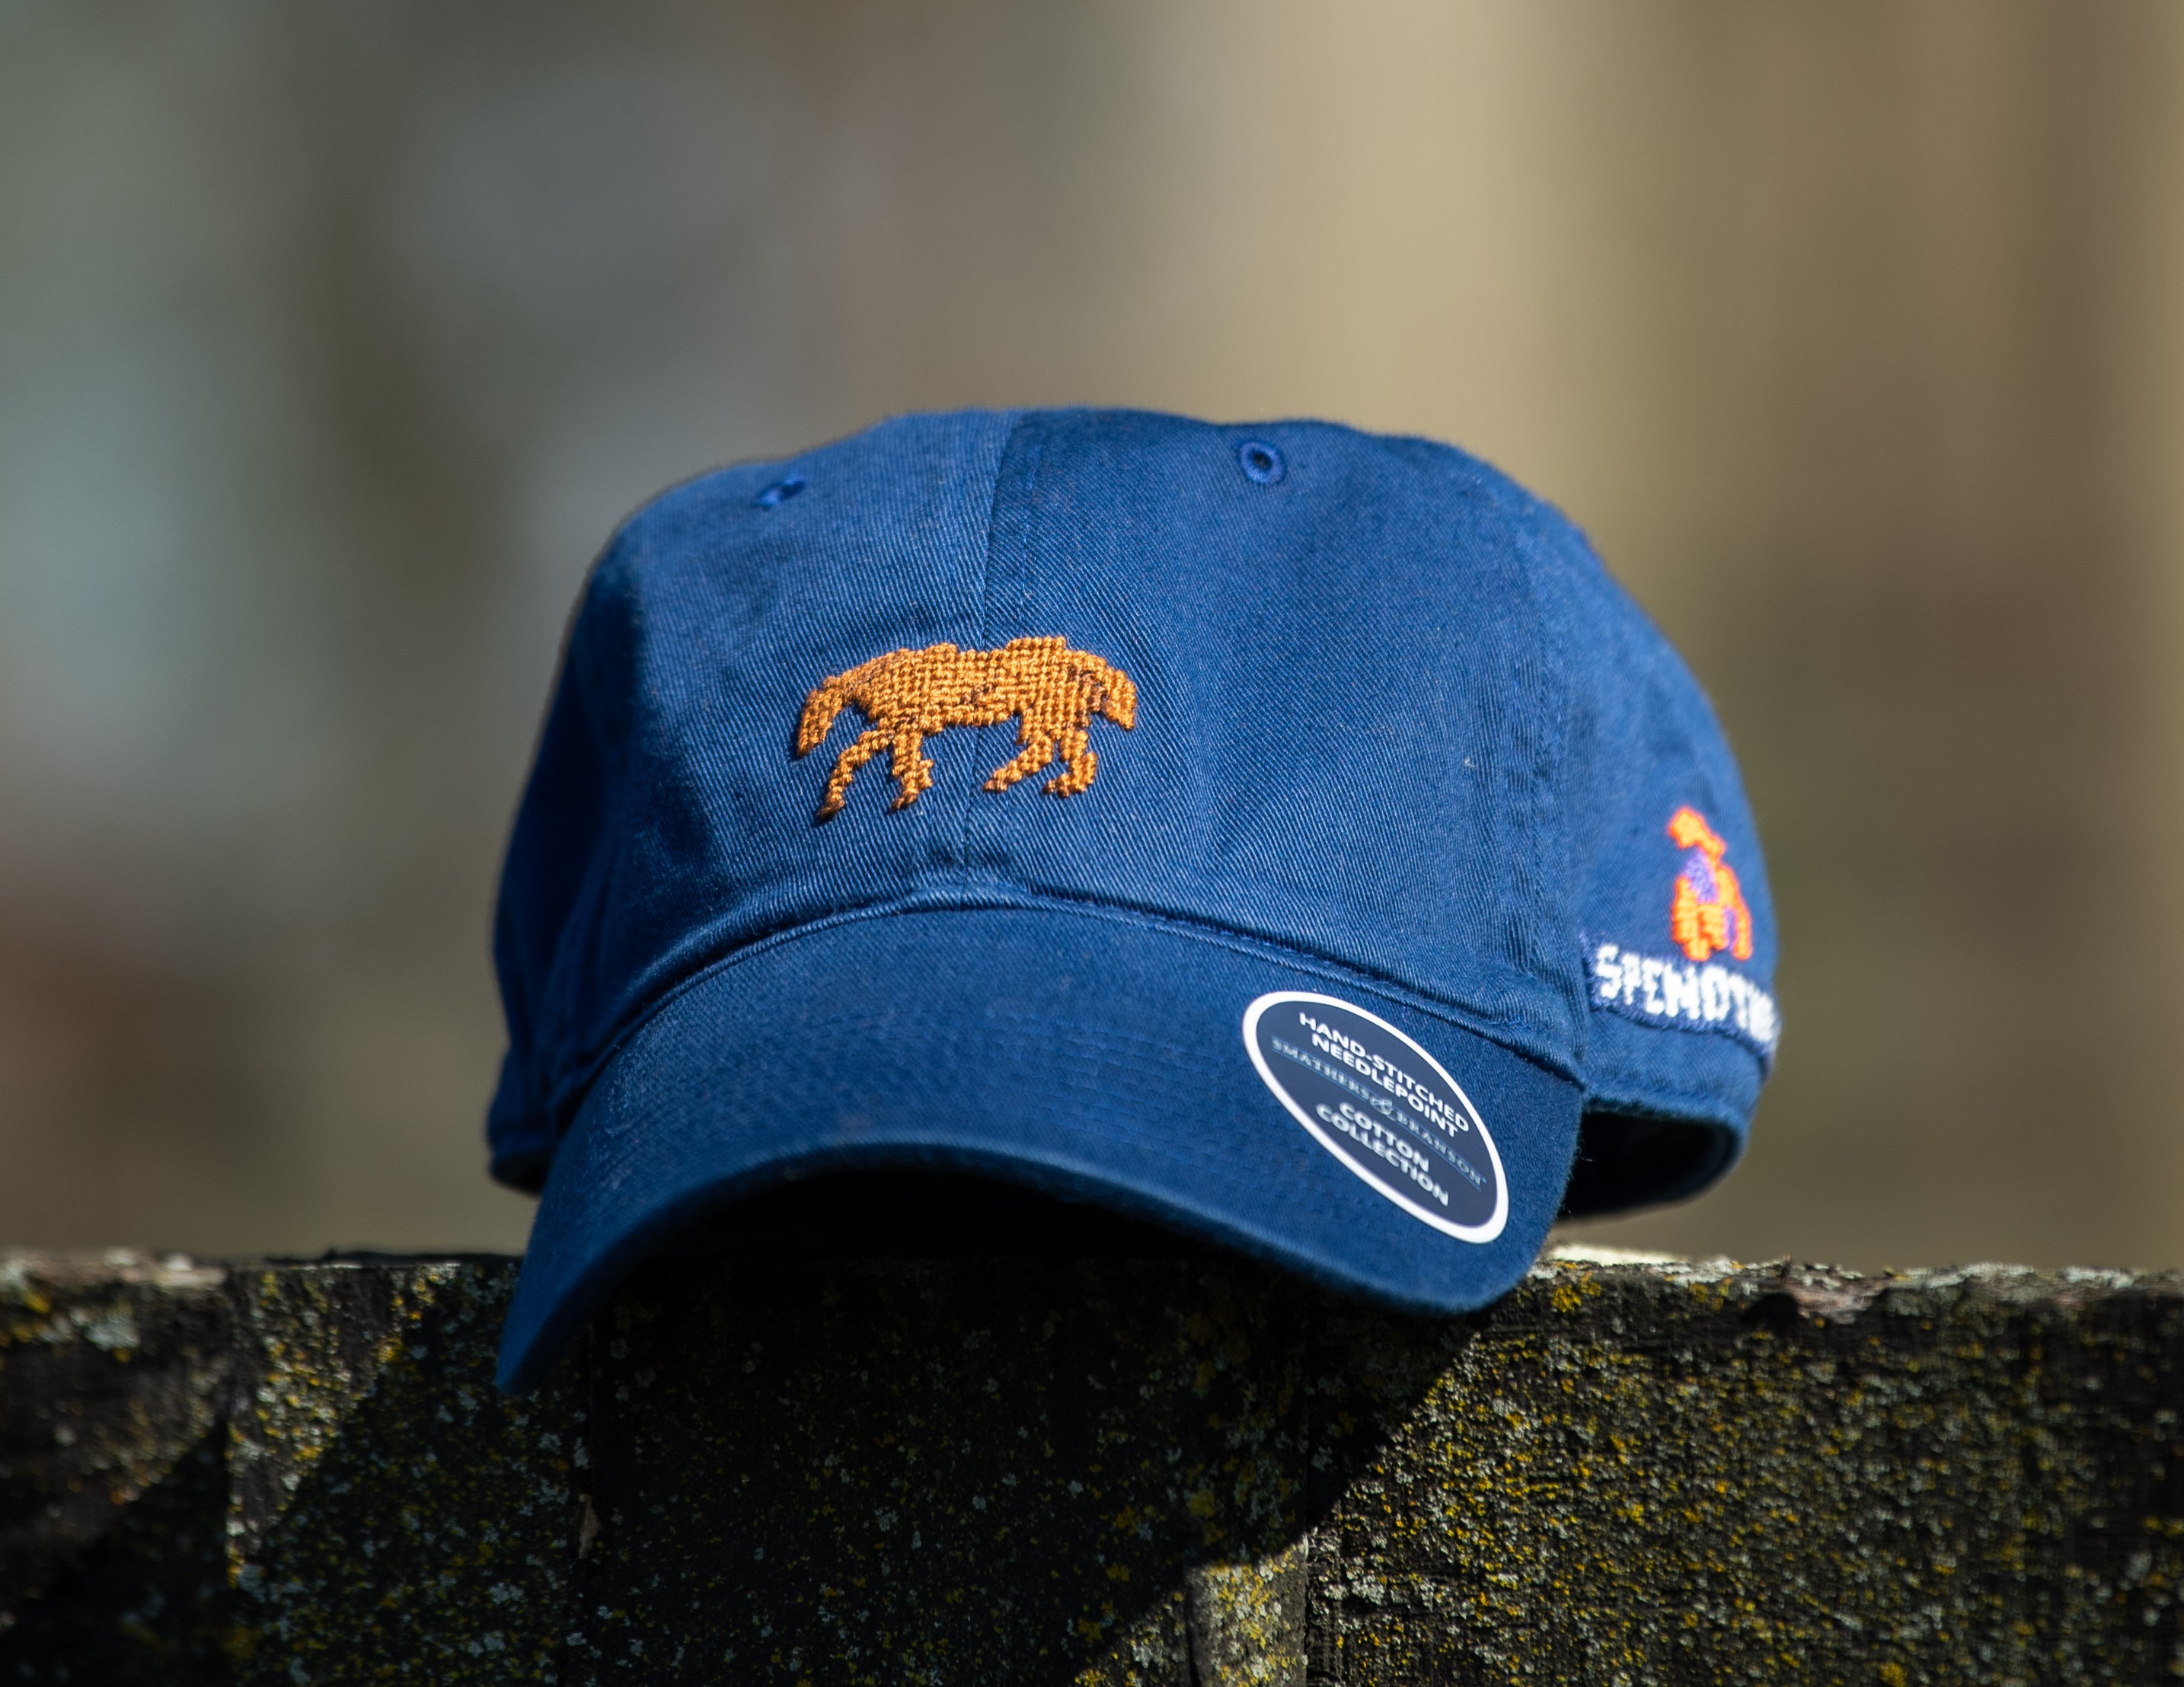 The Spendthrift Needlepoint Hat